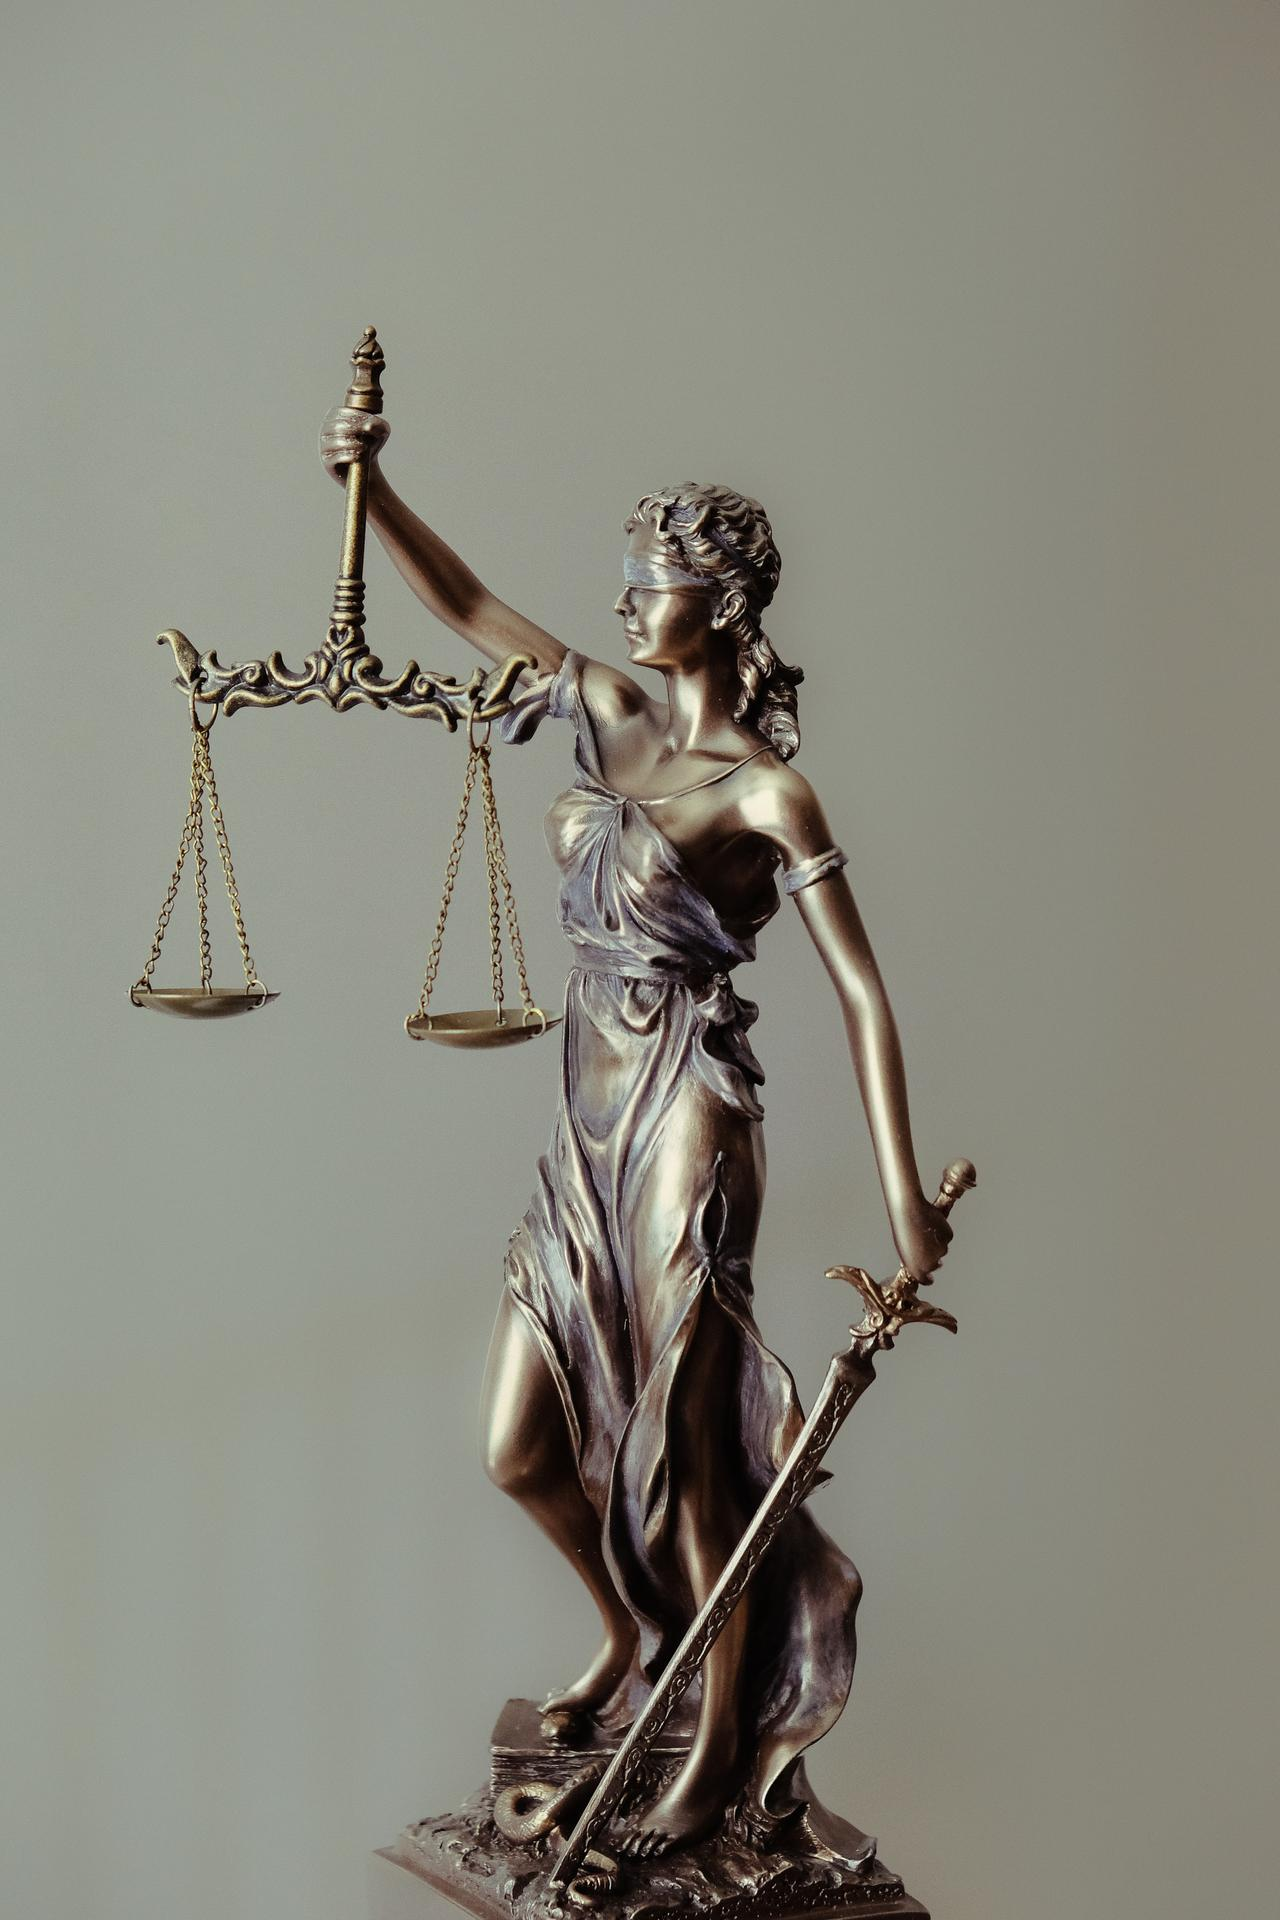 Lady Justice statue at offices of personal injury attorney in Wilmington, NC.